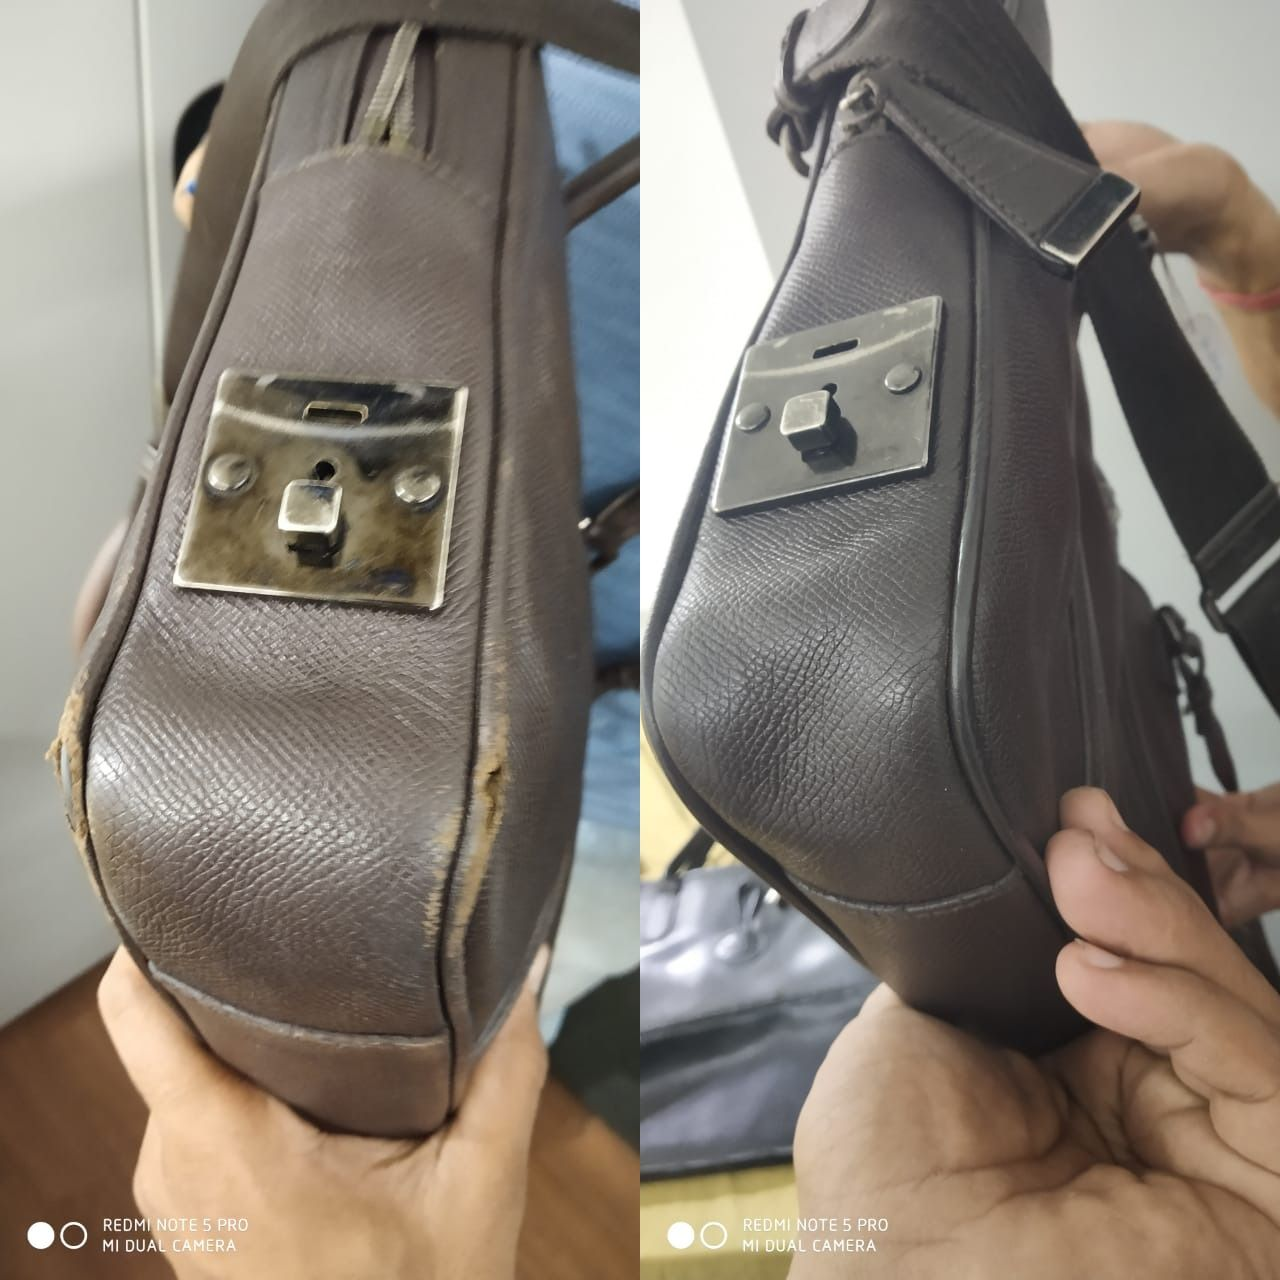 Torn Piping Of A Leather Handbag